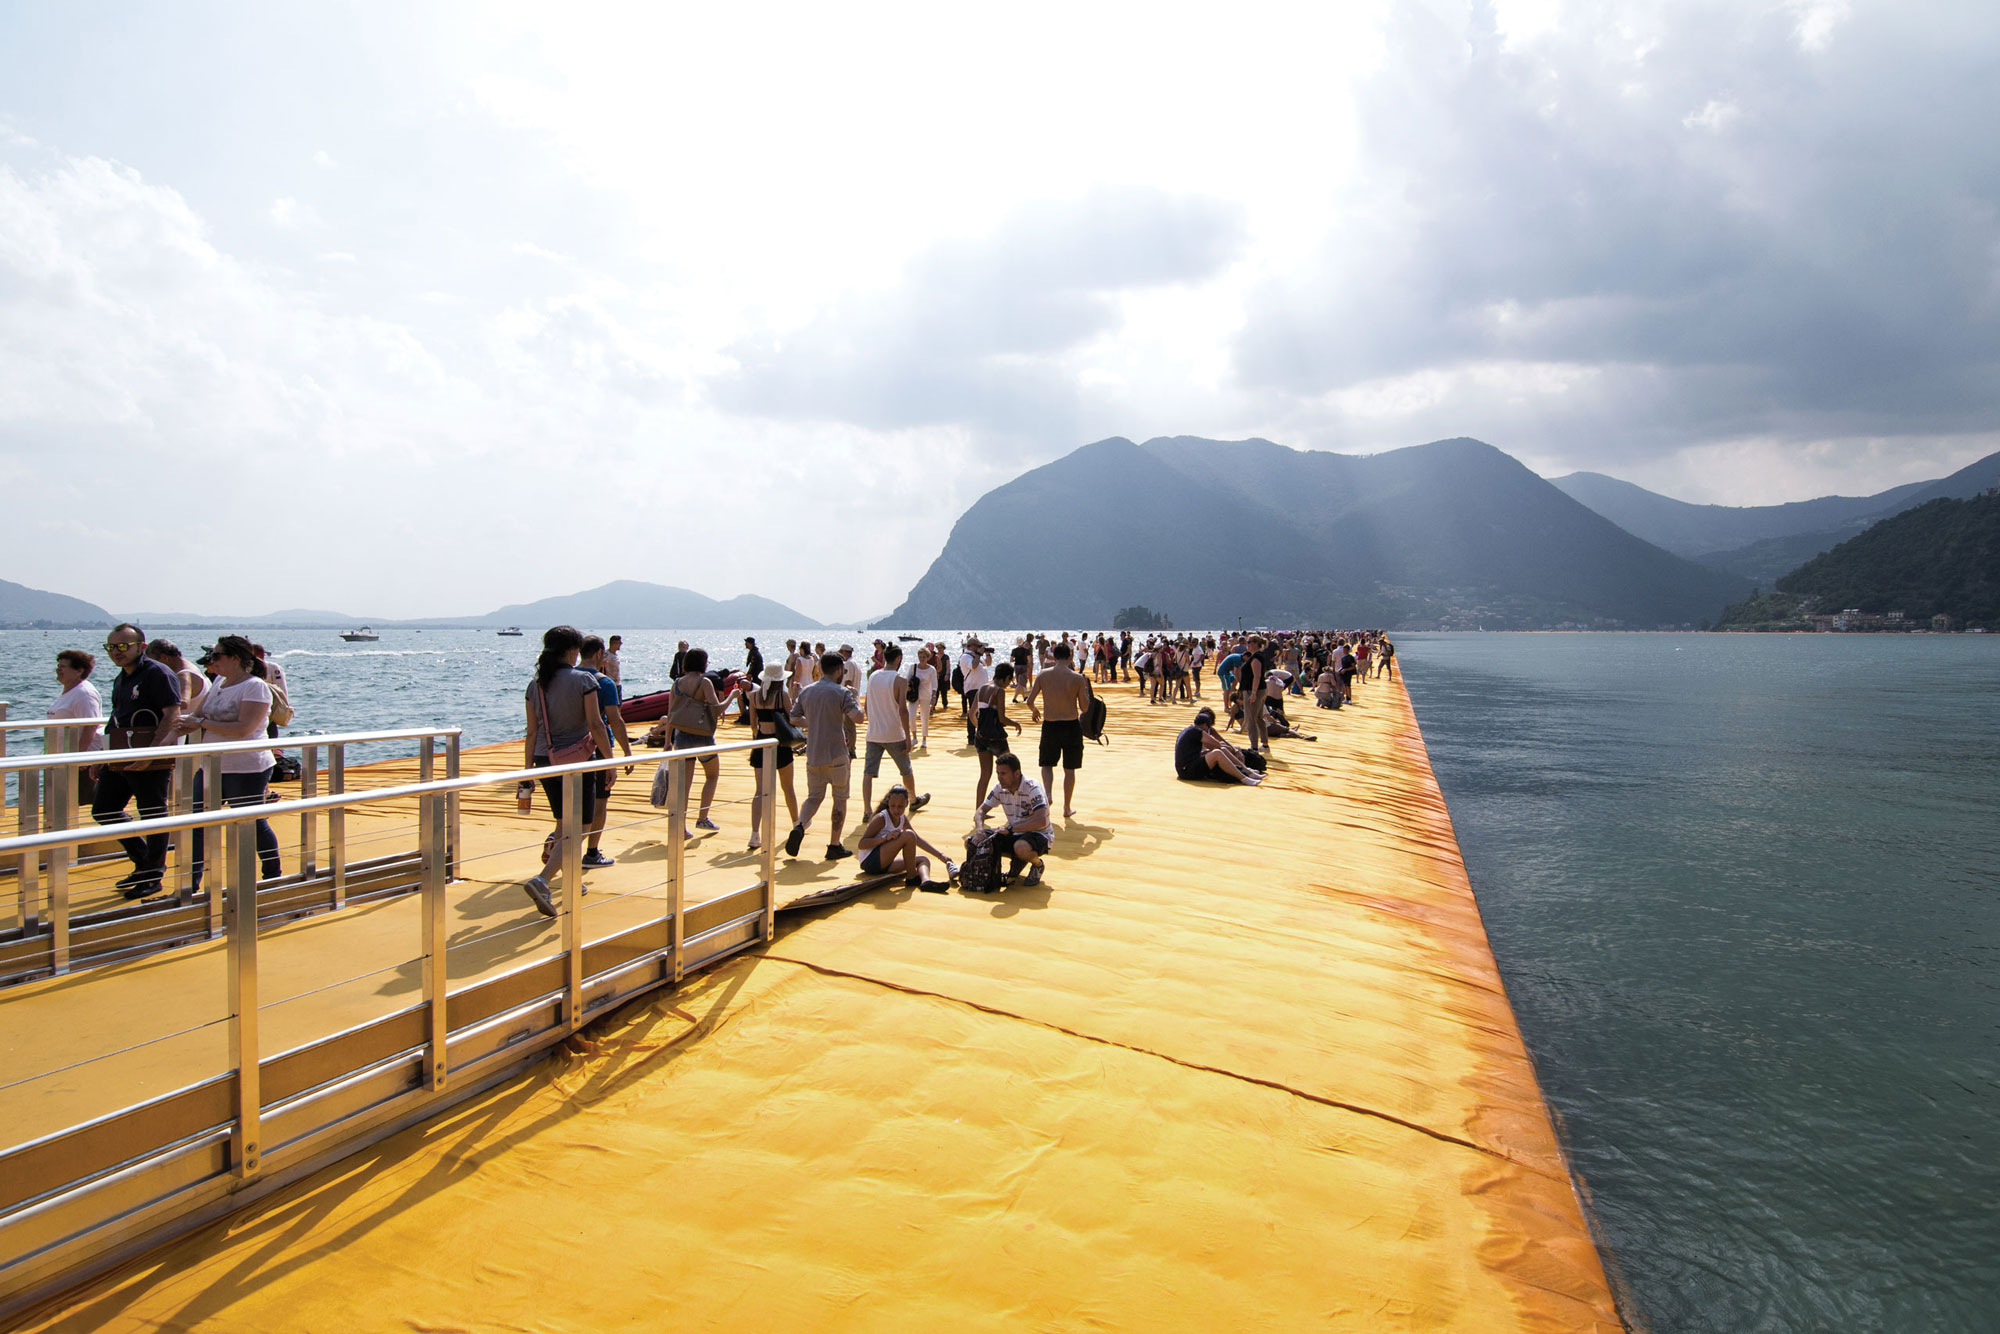 The Floating Piers by Christo, Multimodal Accessibility Study